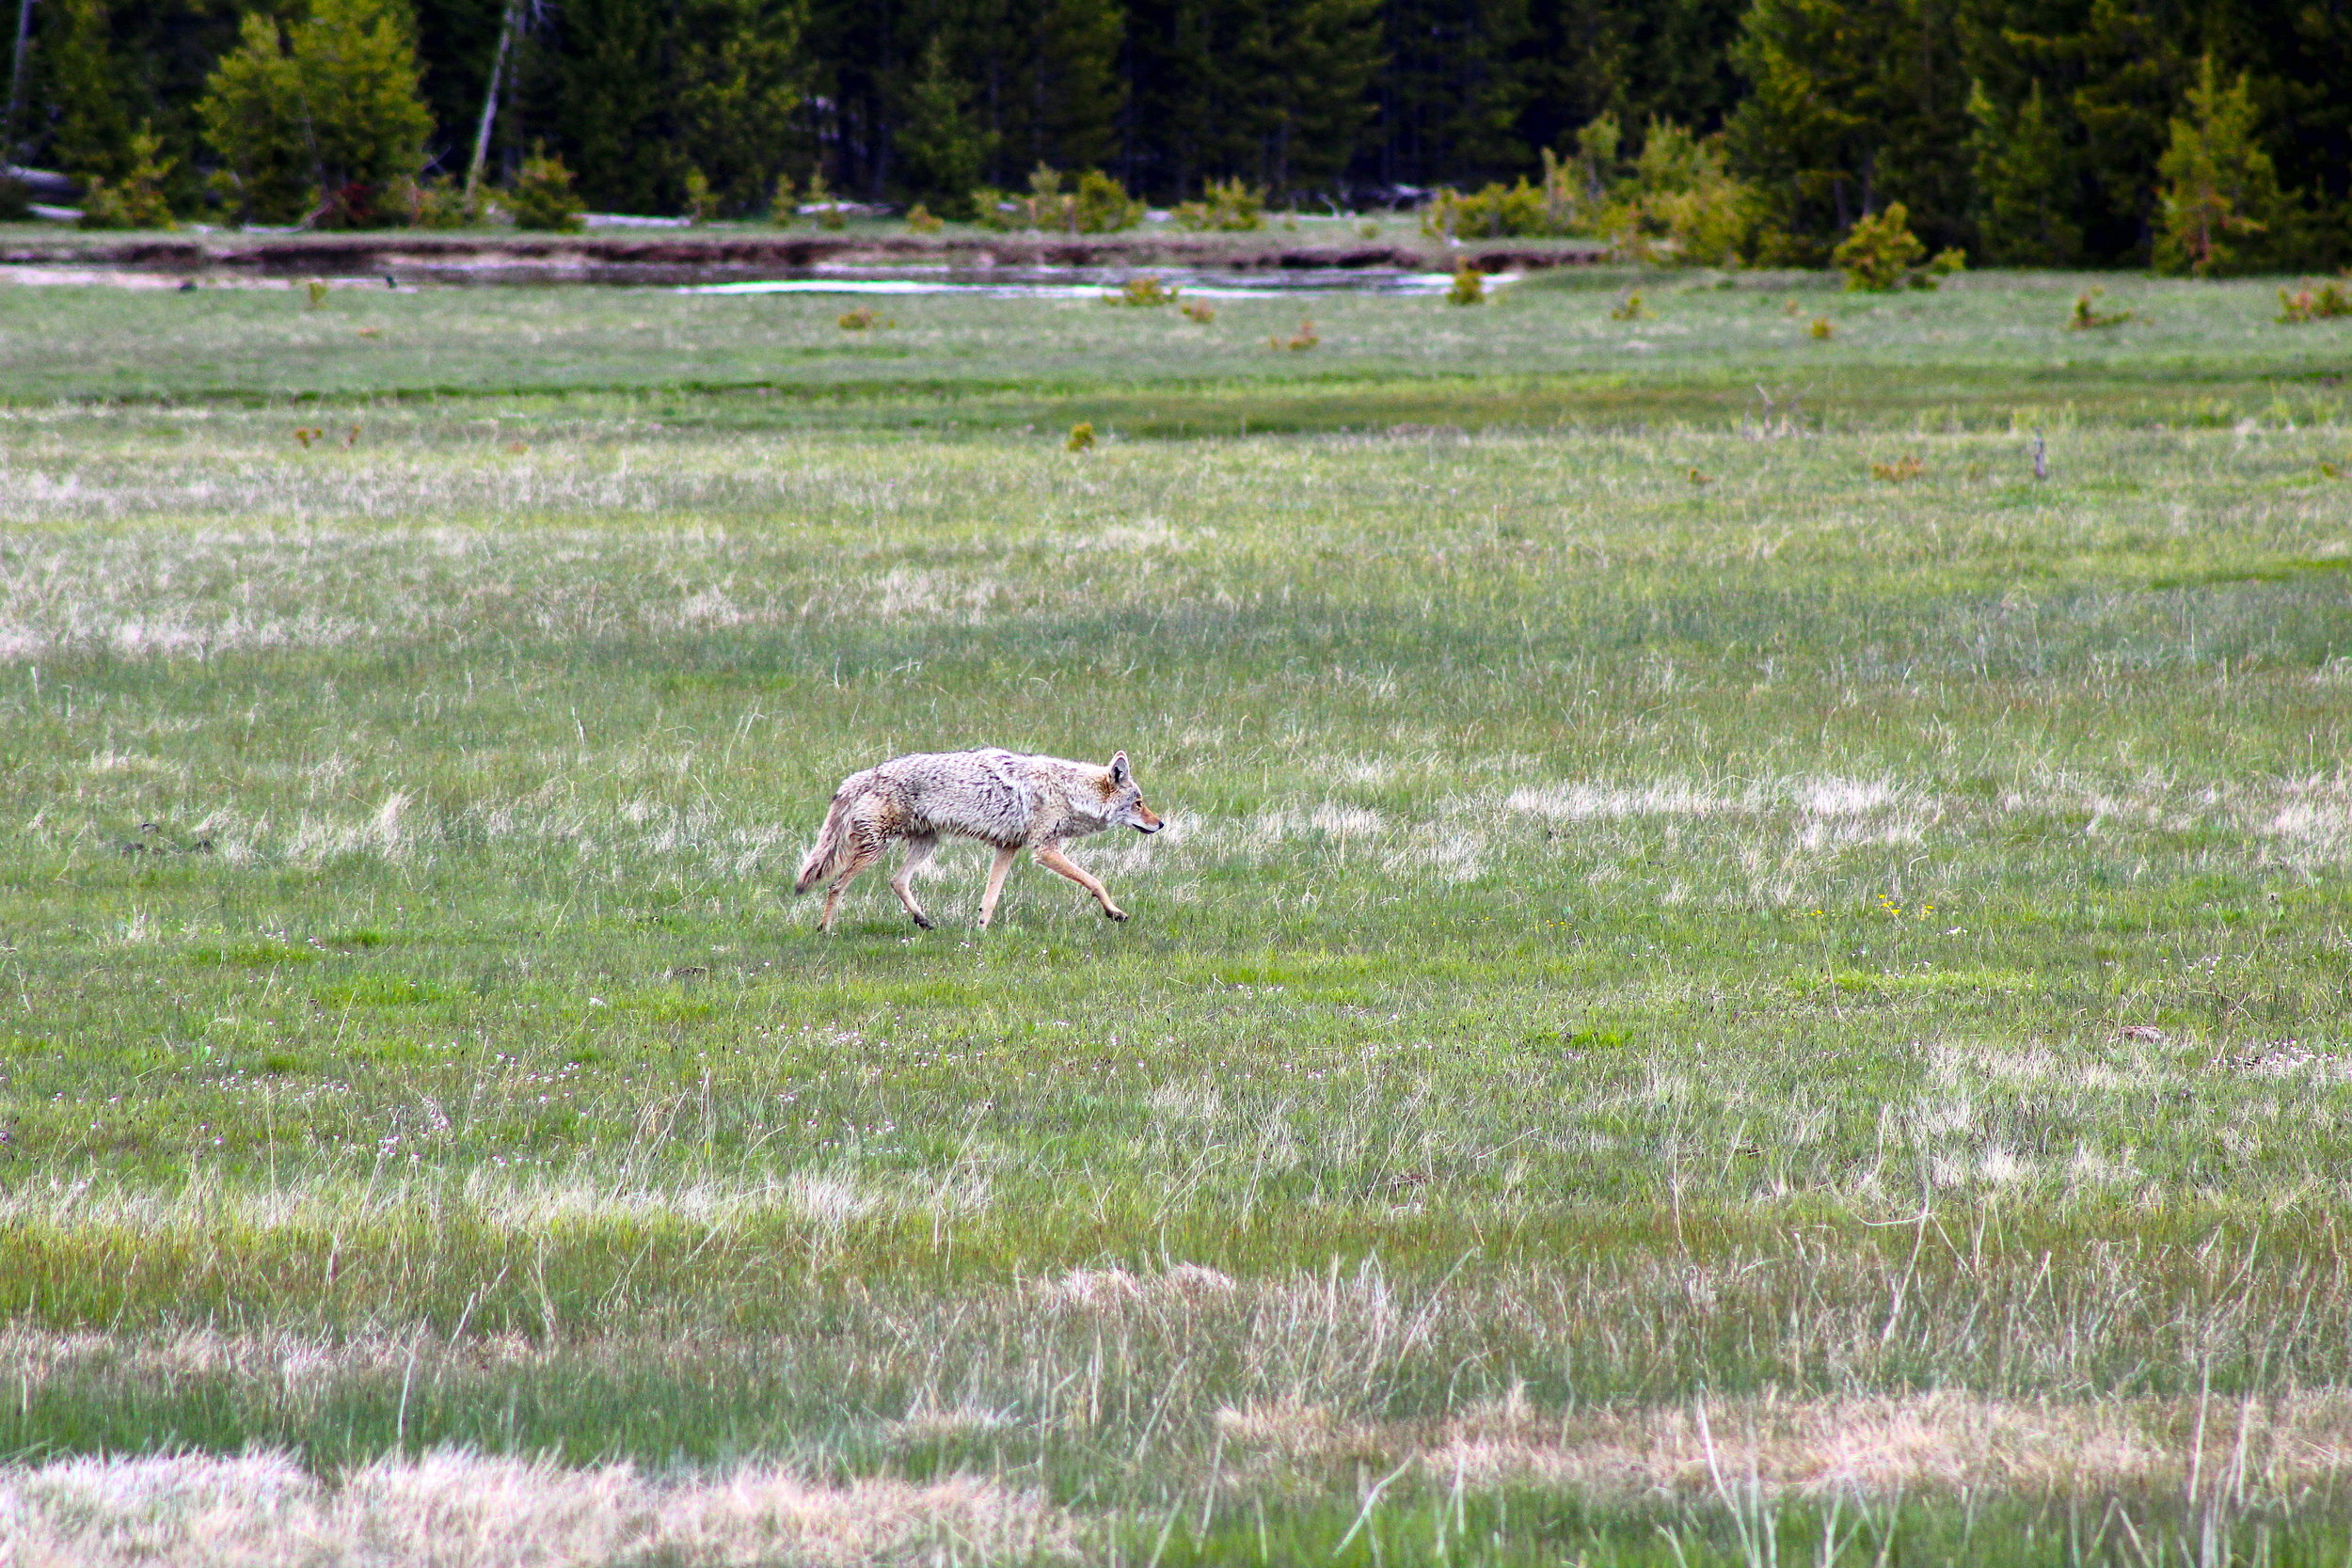 coyote. not wolf. coyote.